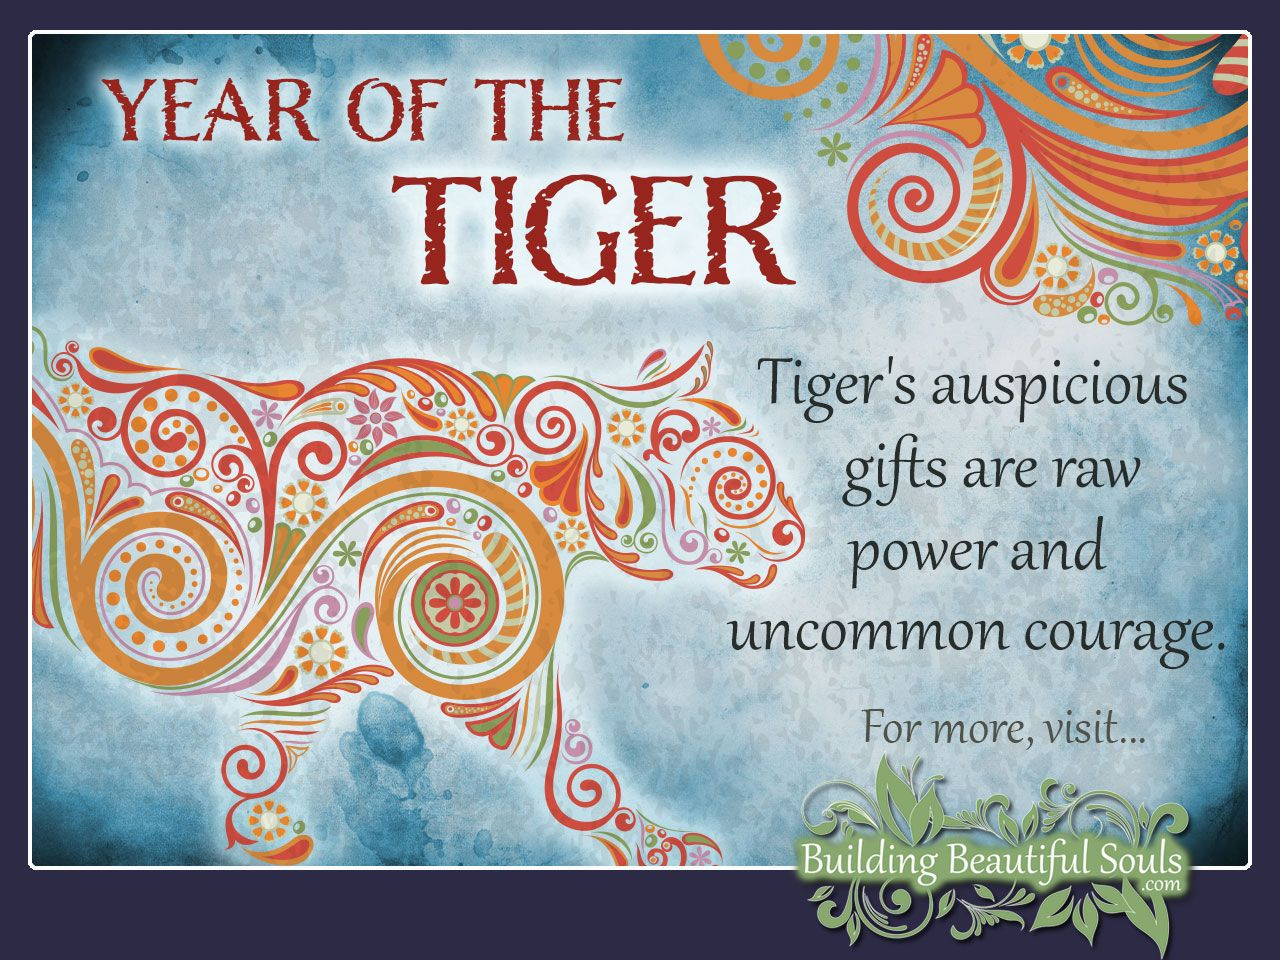 Year Of The Tiger Chinese Zodiac Tiger Pig Chinese Zodiac Chinese Zodiac Signs